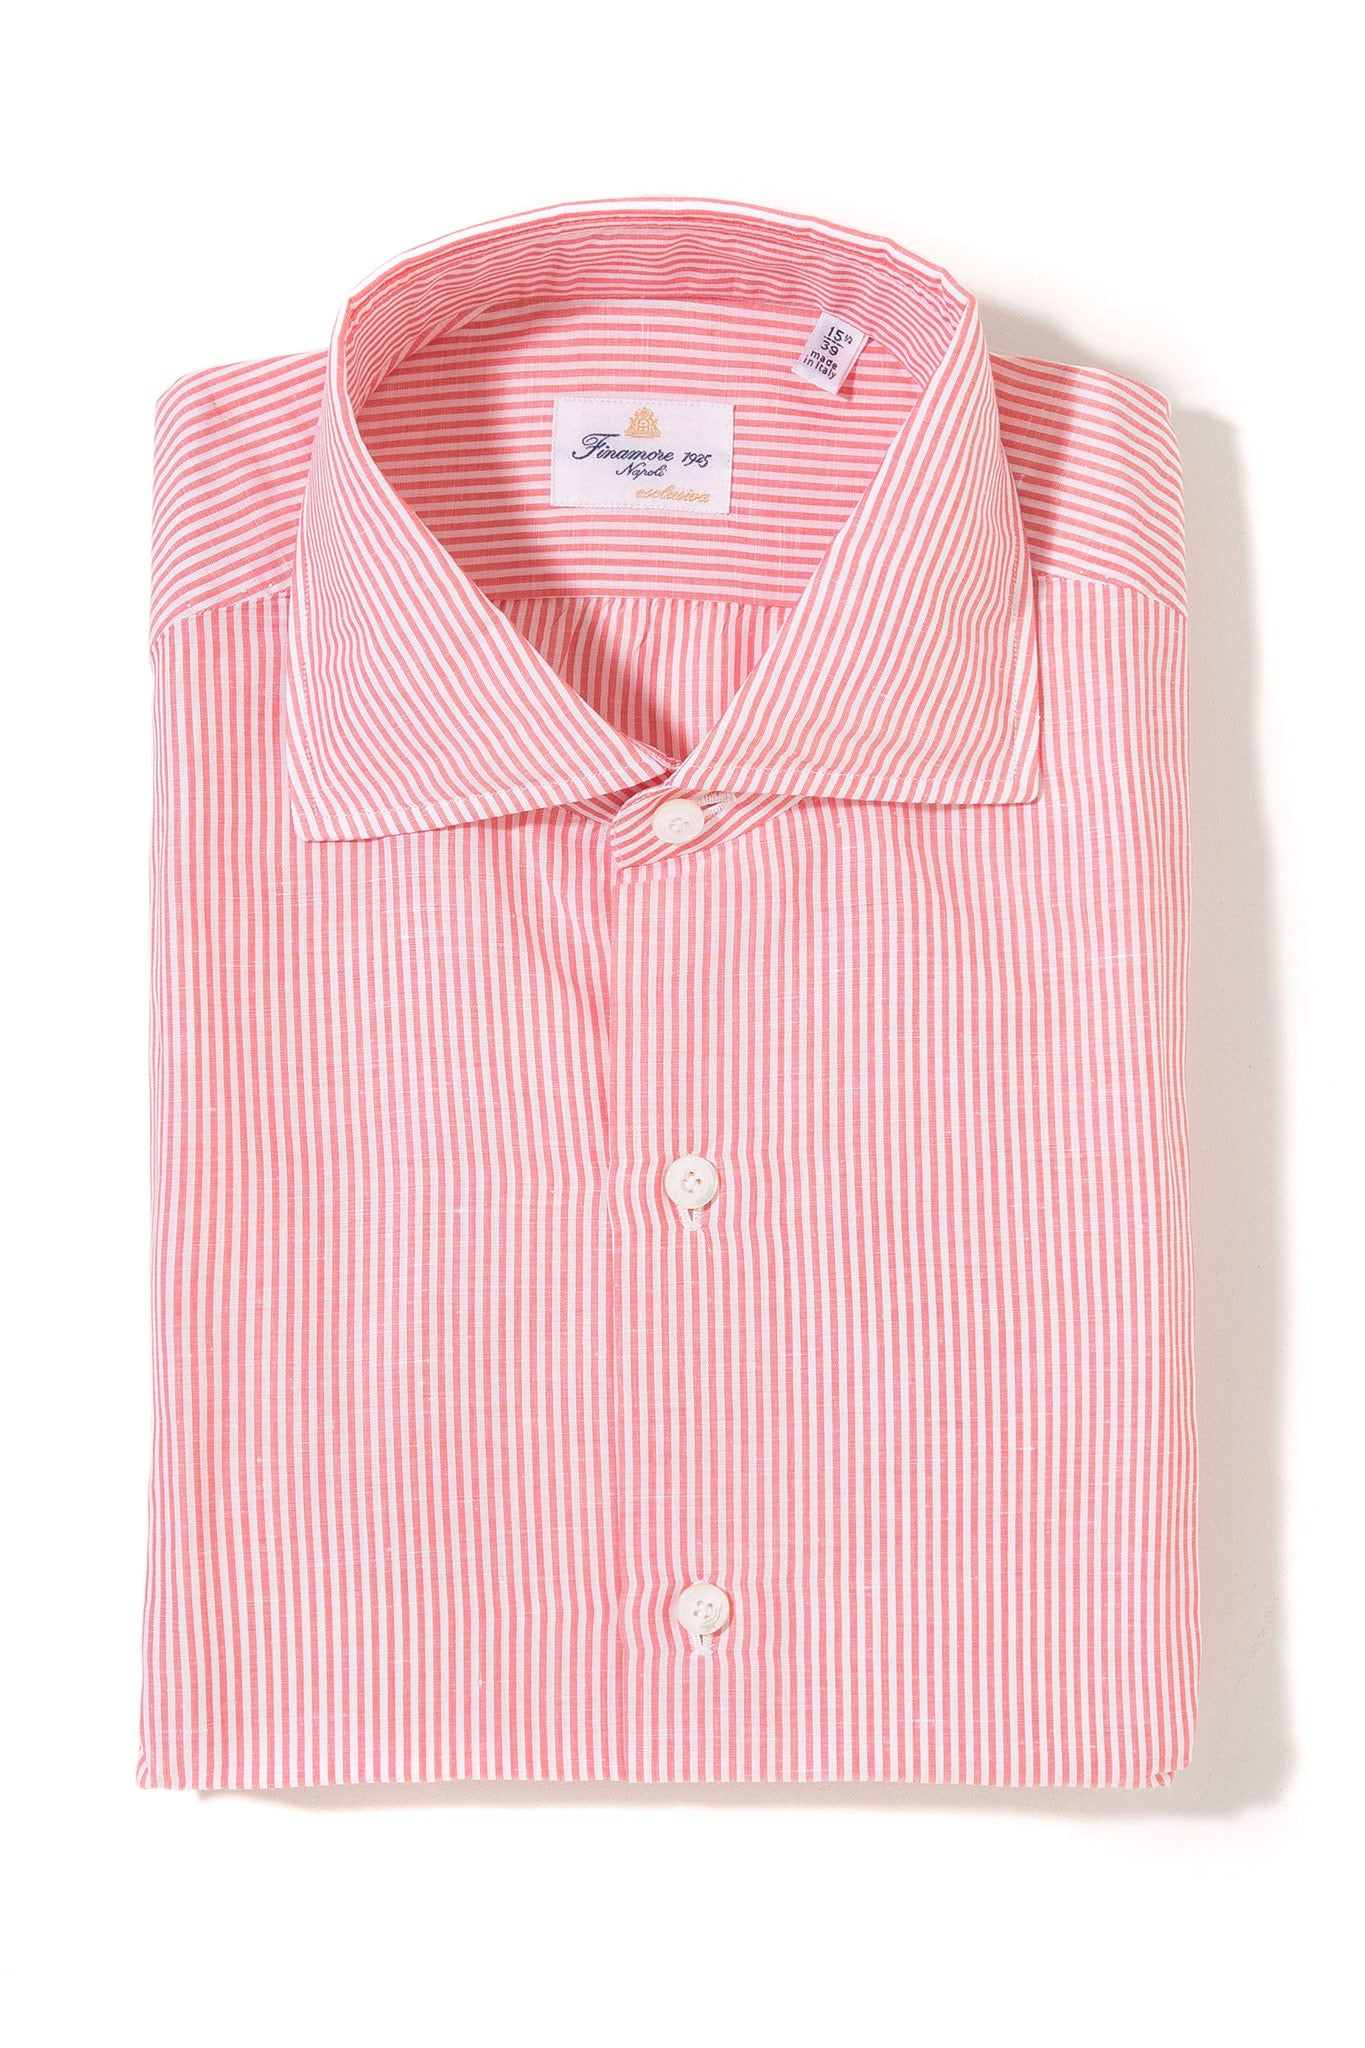 Finamore DeAngelo Esclusiva Dress Shirt (4103409336413)